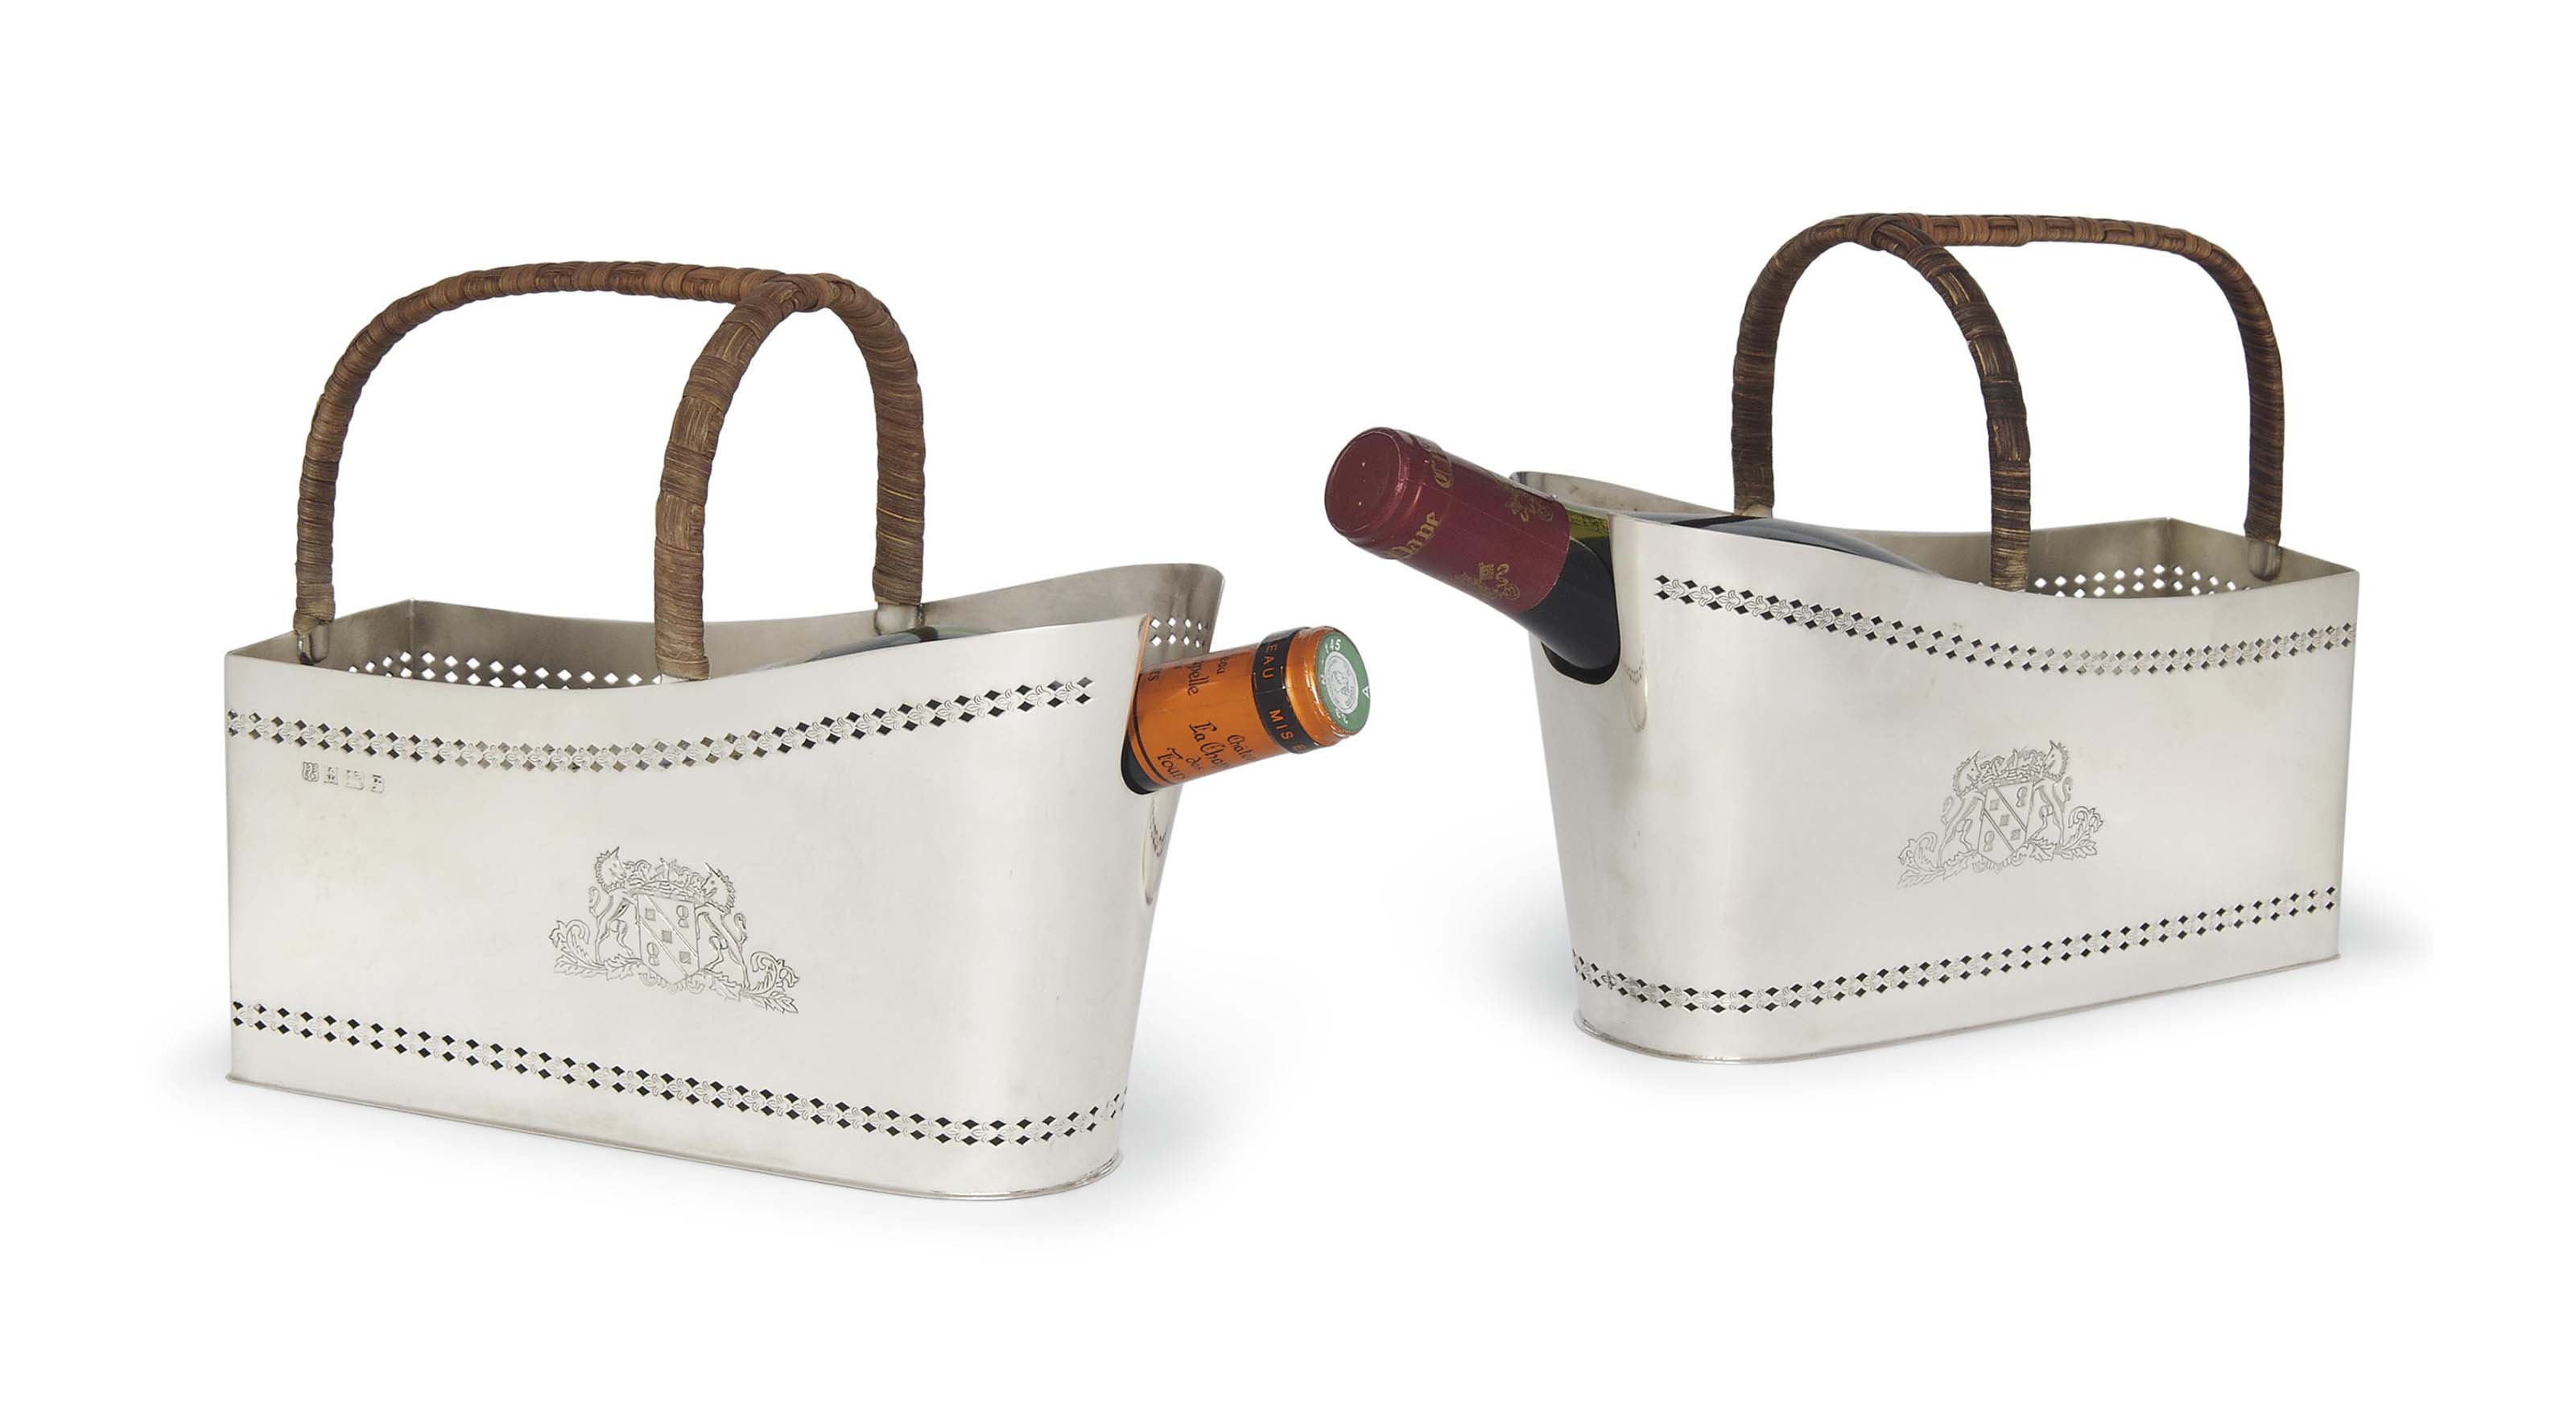 A PAIR OF SILVER BOTTLE HOLDER